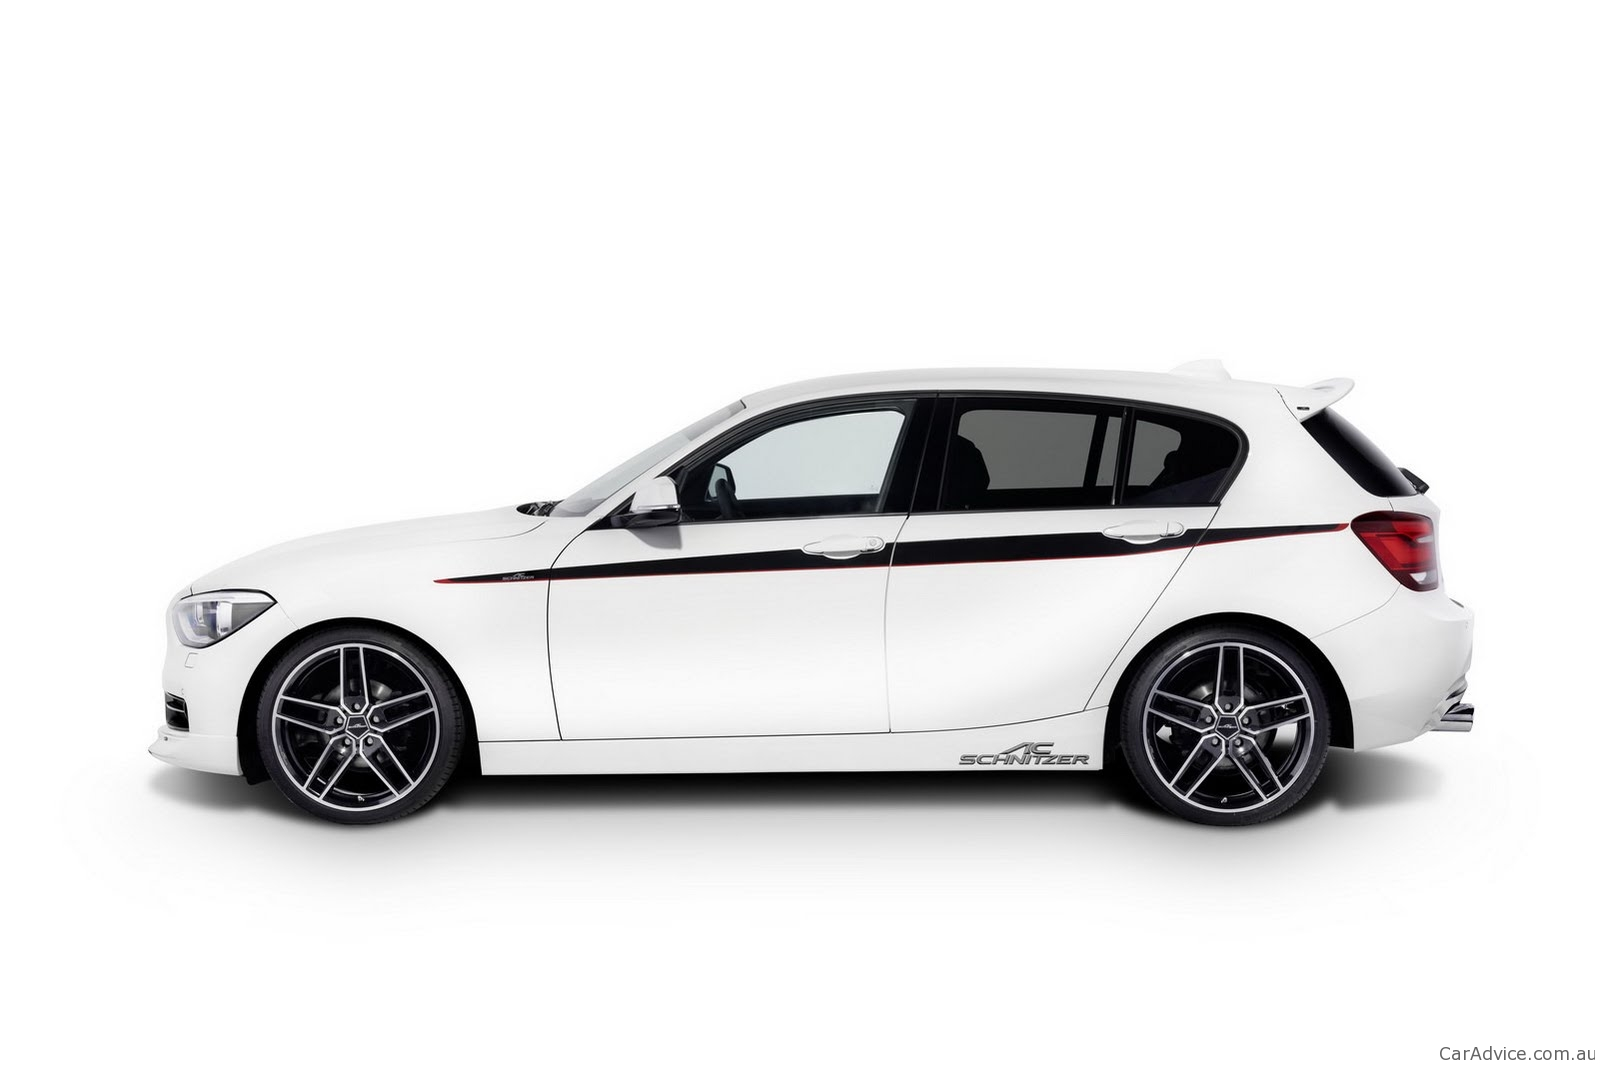 2012 bmw 1 series tuned by ac schnitzer photos 1 of 6. Black Bedroom Furniture Sets. Home Design Ideas